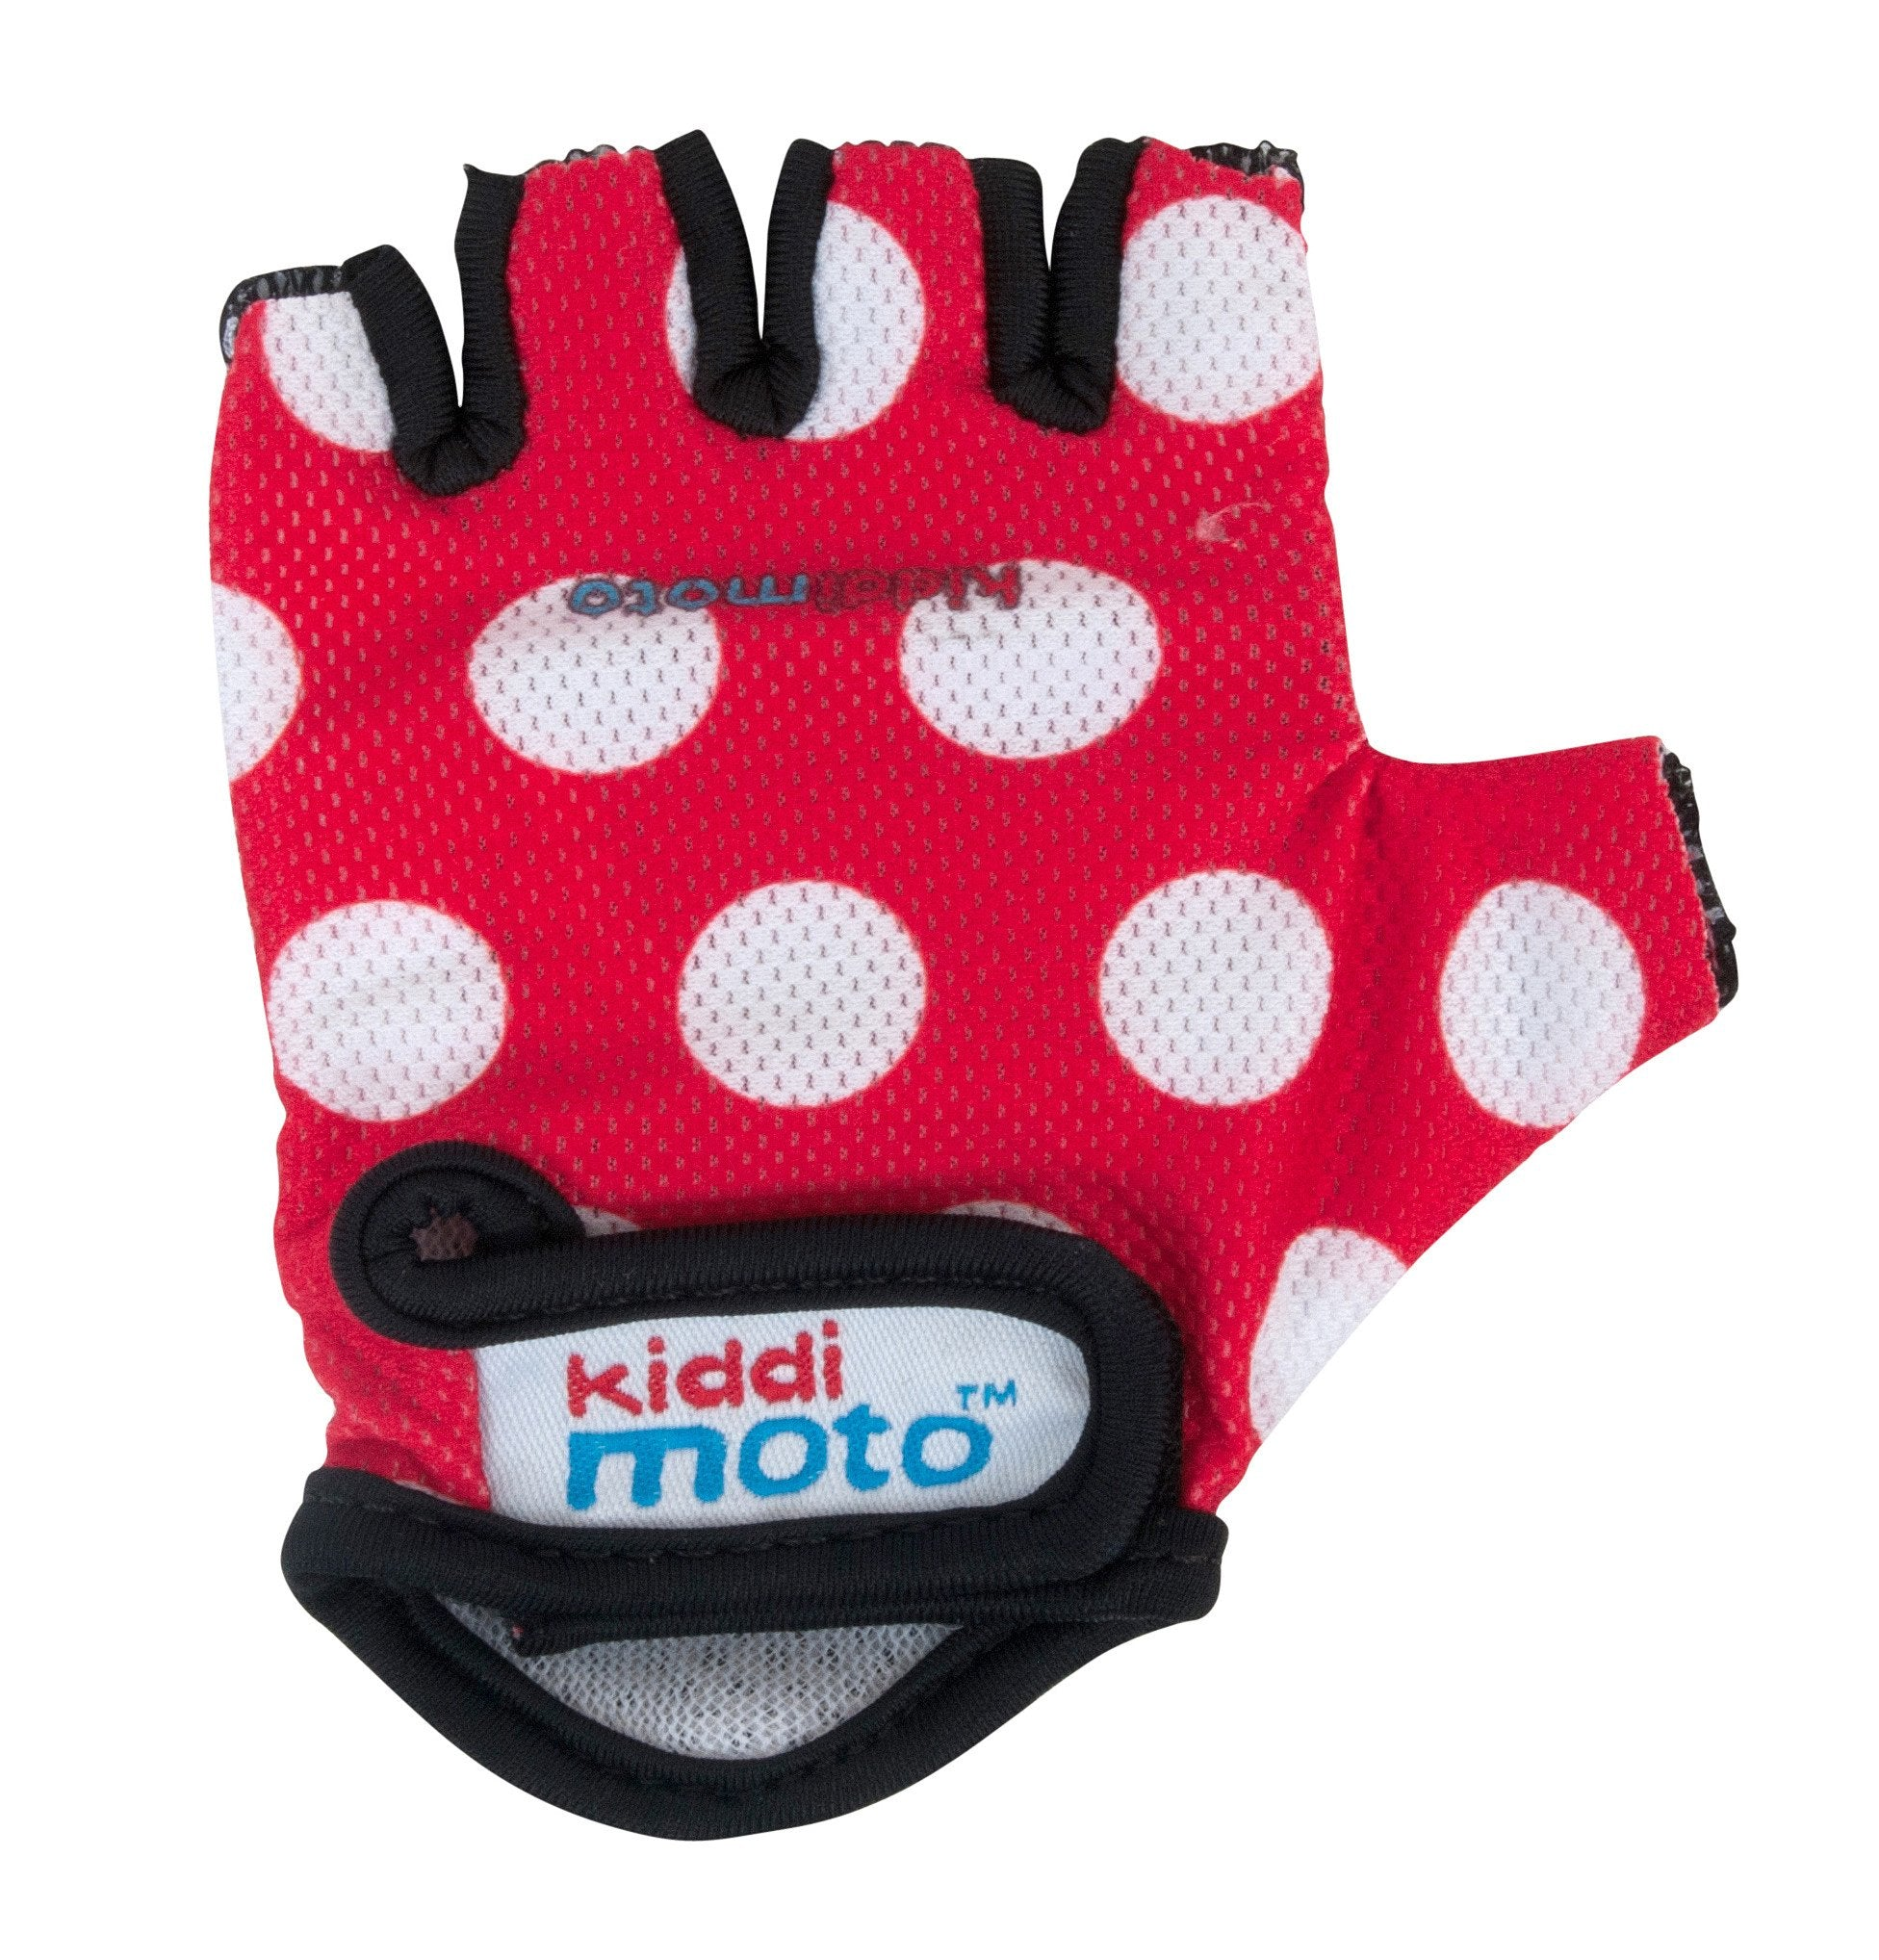 Our Red Dotty gloves are lightweight and fingerless, with a white polka dot design over a red background